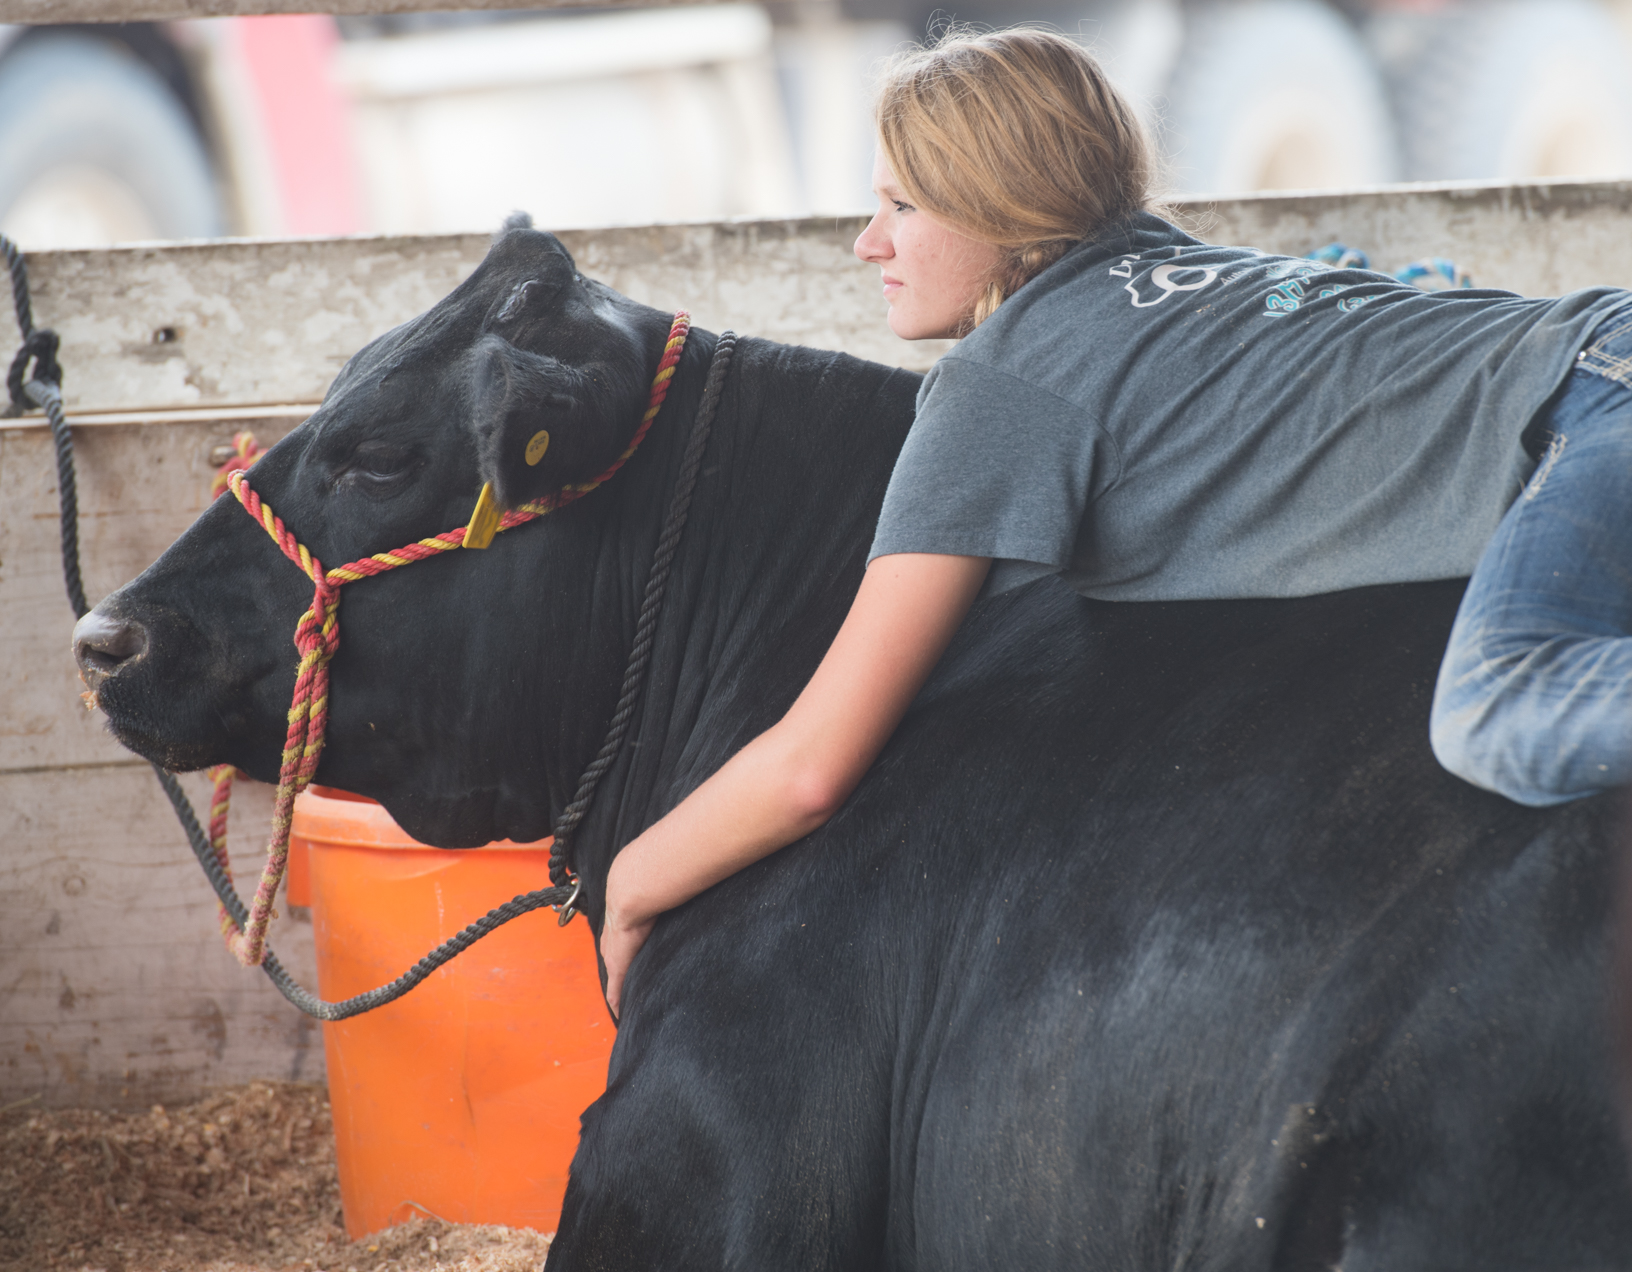 Katelyn Bartels of Sumner relaxes on her steer while visiting with friends at the Bremer County Fair in Waverly. Photo credit: Joseph L. Murphy, Iowa Soybean Association